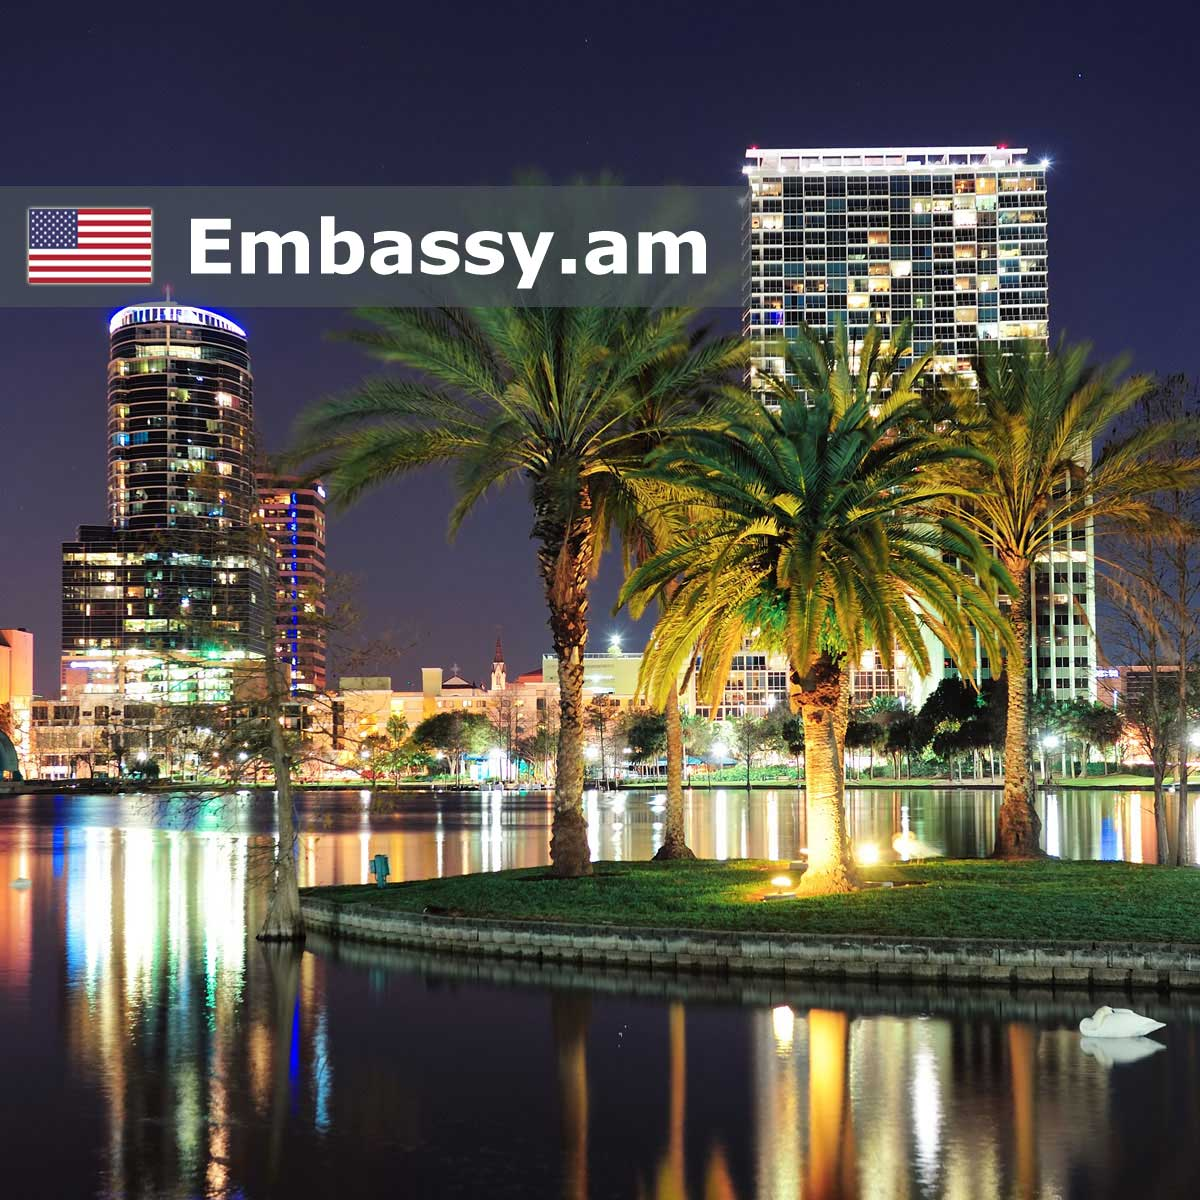 Orlando - Hotels in United States of America - Embassy.am